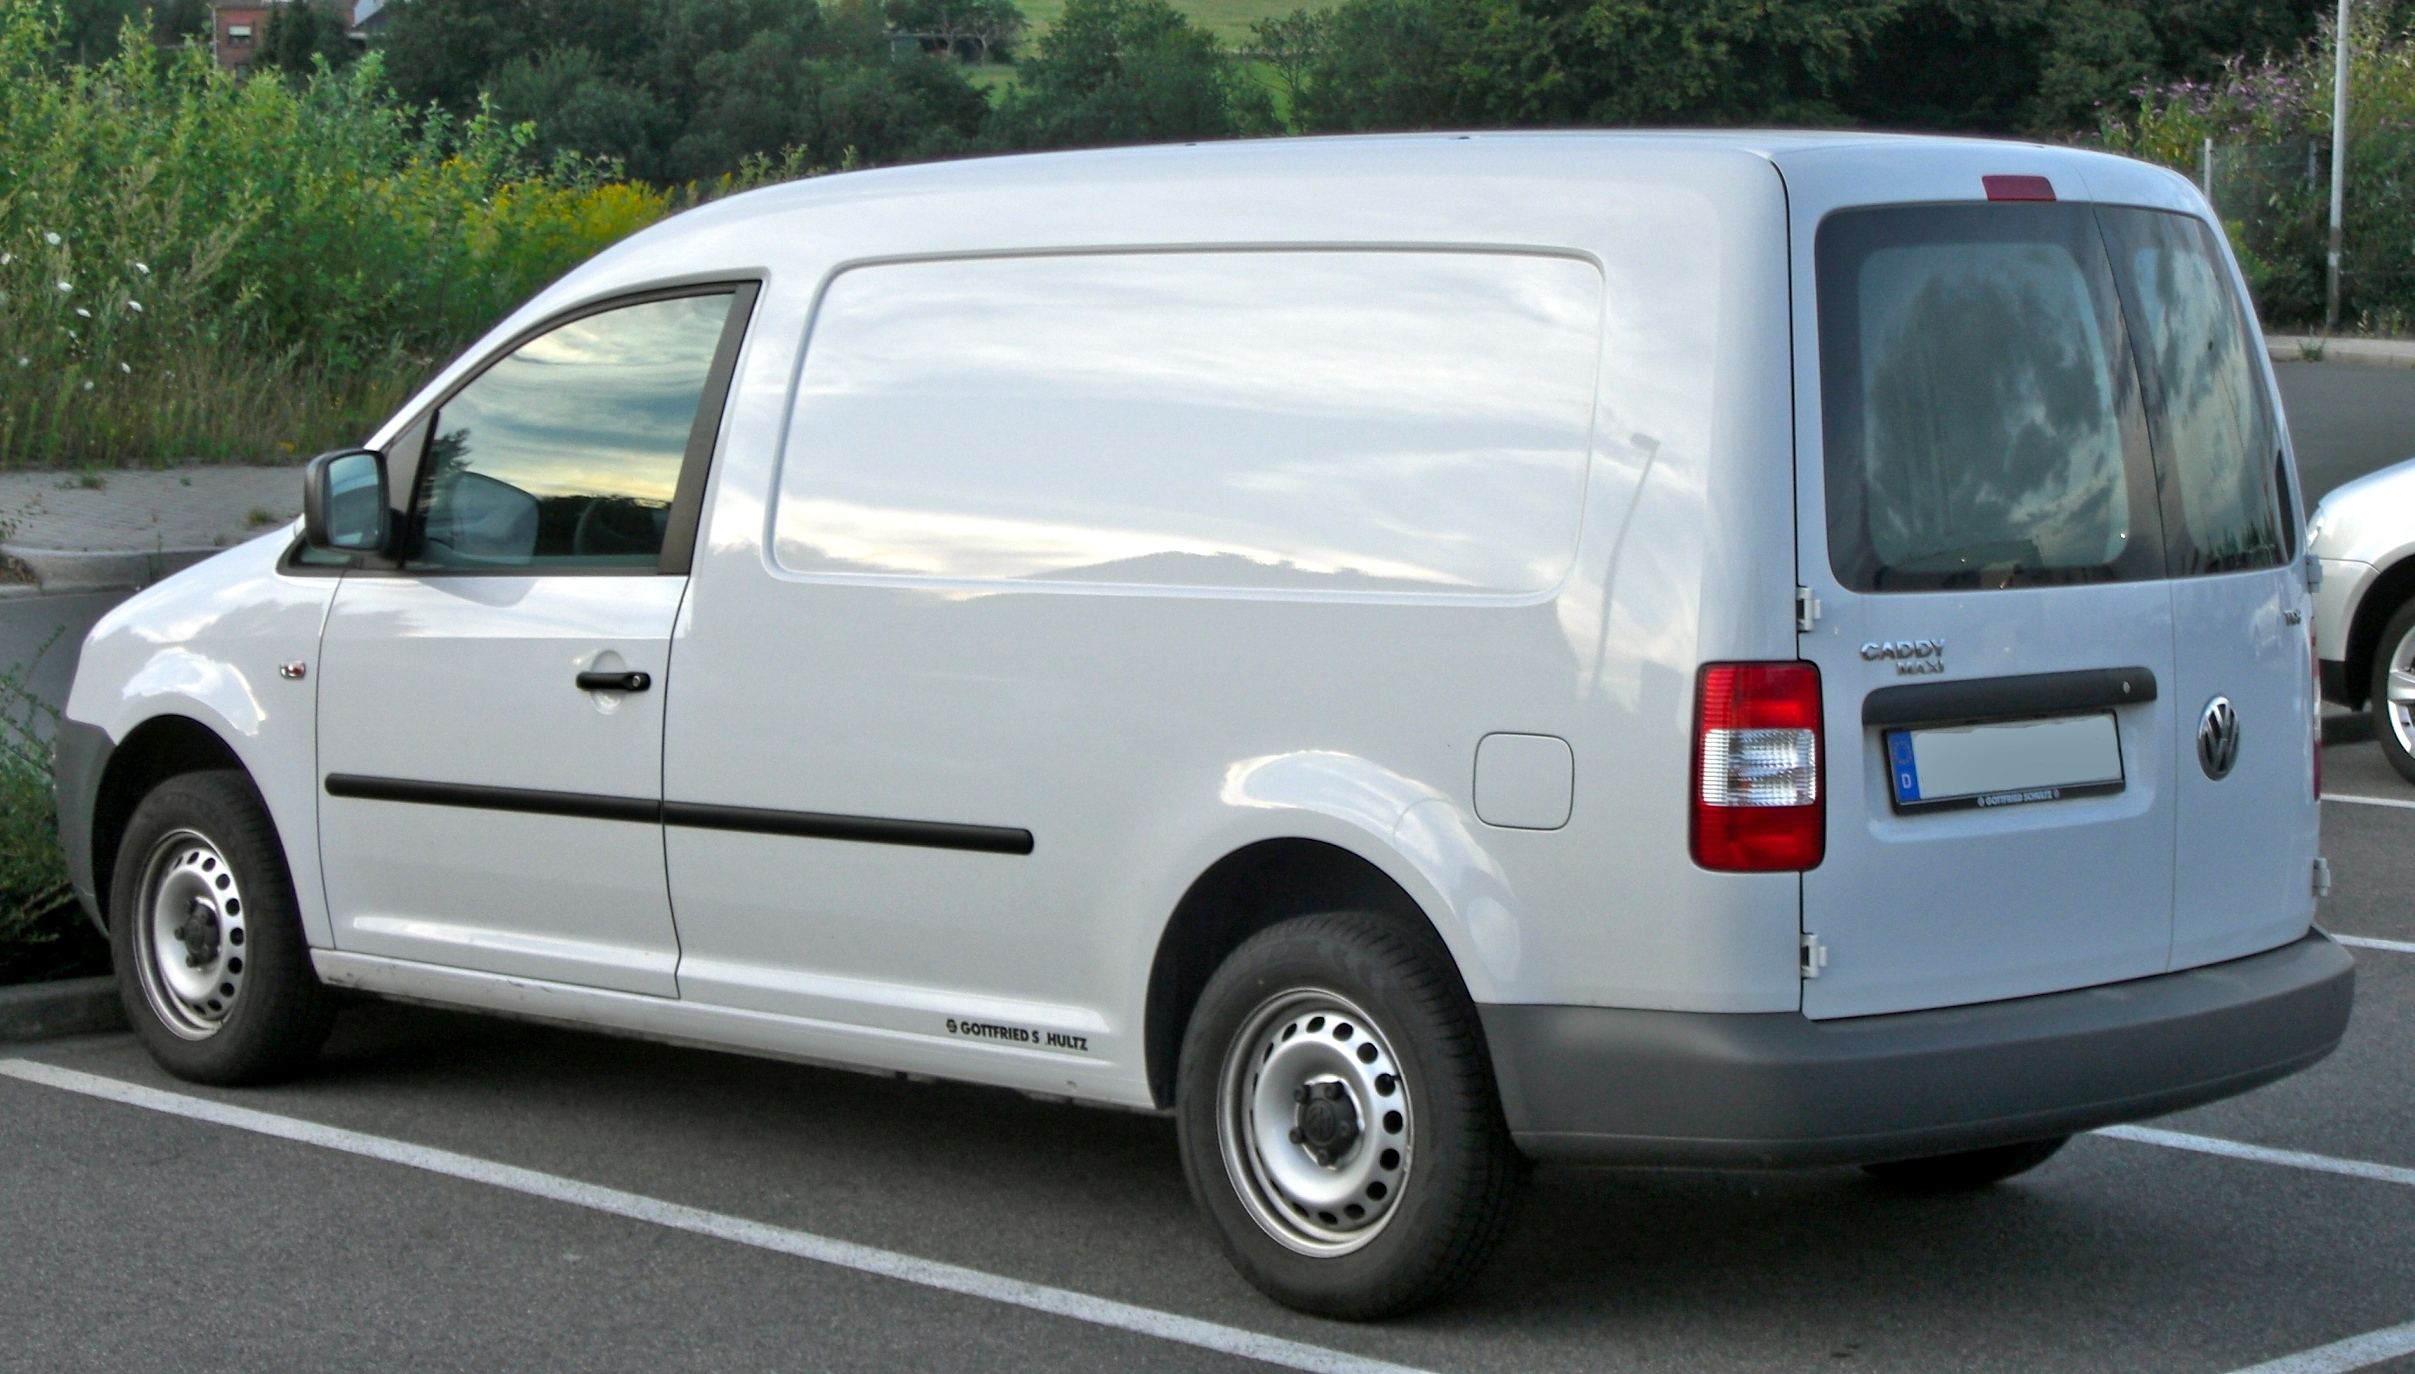 Mb Cargo Van >> File:VW Caddy Maxi rear-1.jpg - Wikimedia Commons